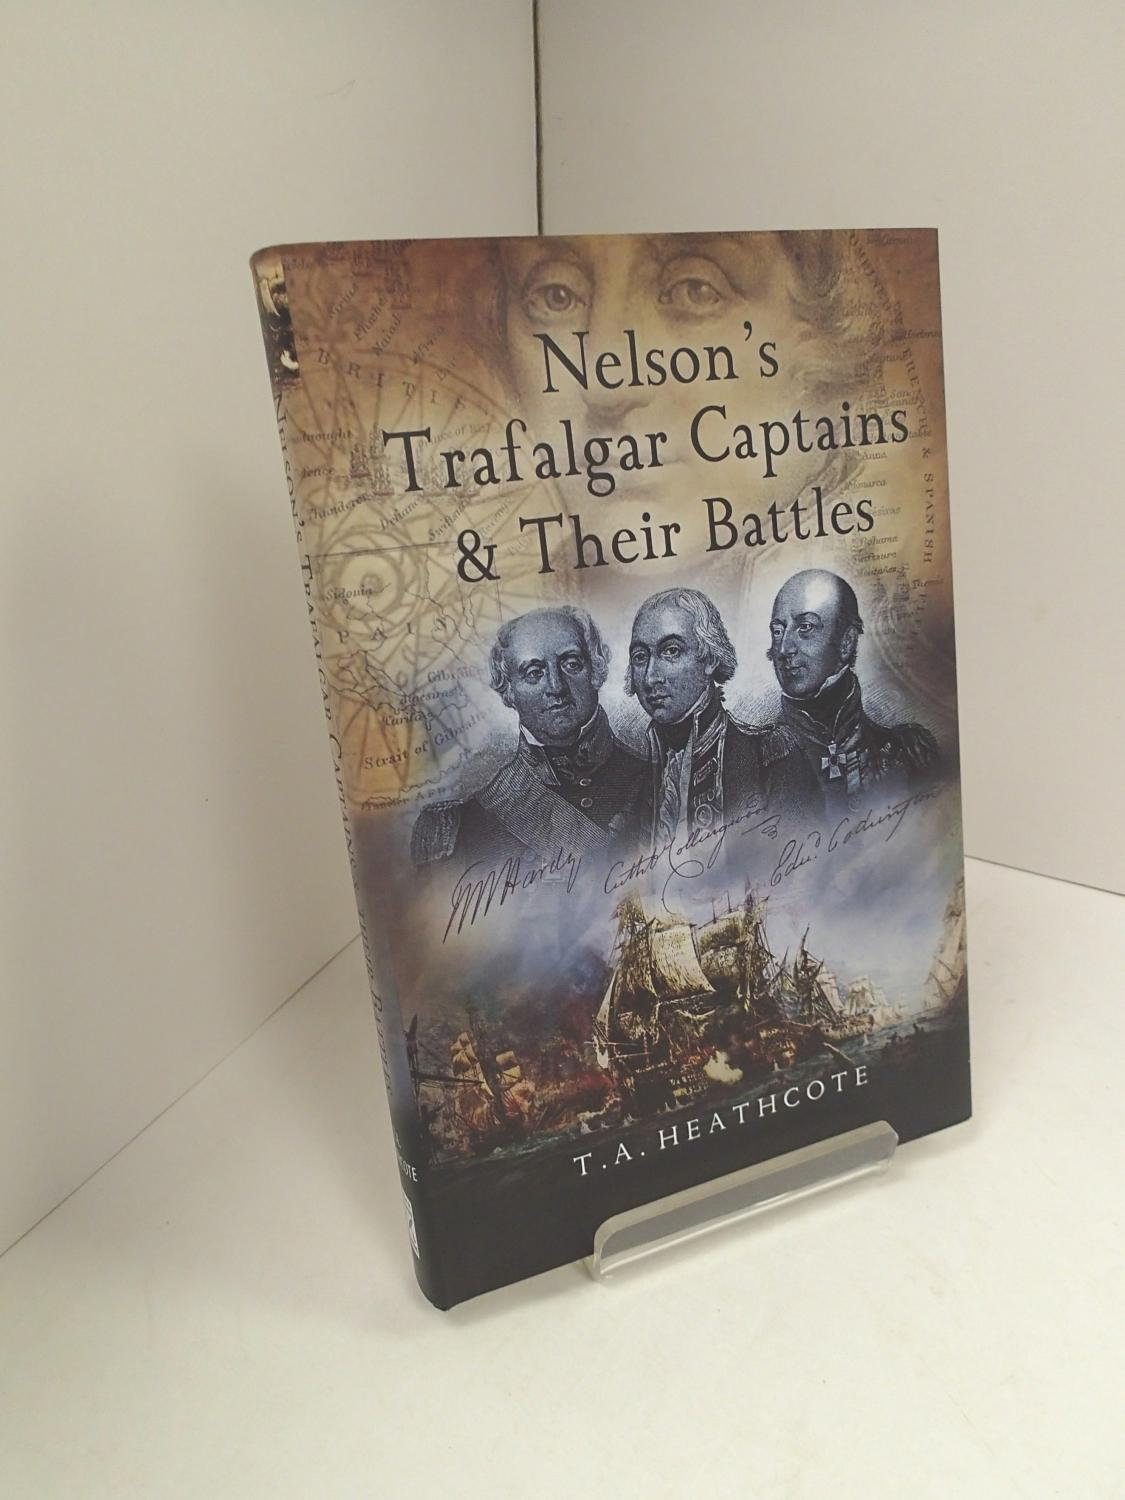 Nelson's Trafalgar Captains & Their Battles: A Biographical and Historical Dictionary - HEATHCOTE, T A